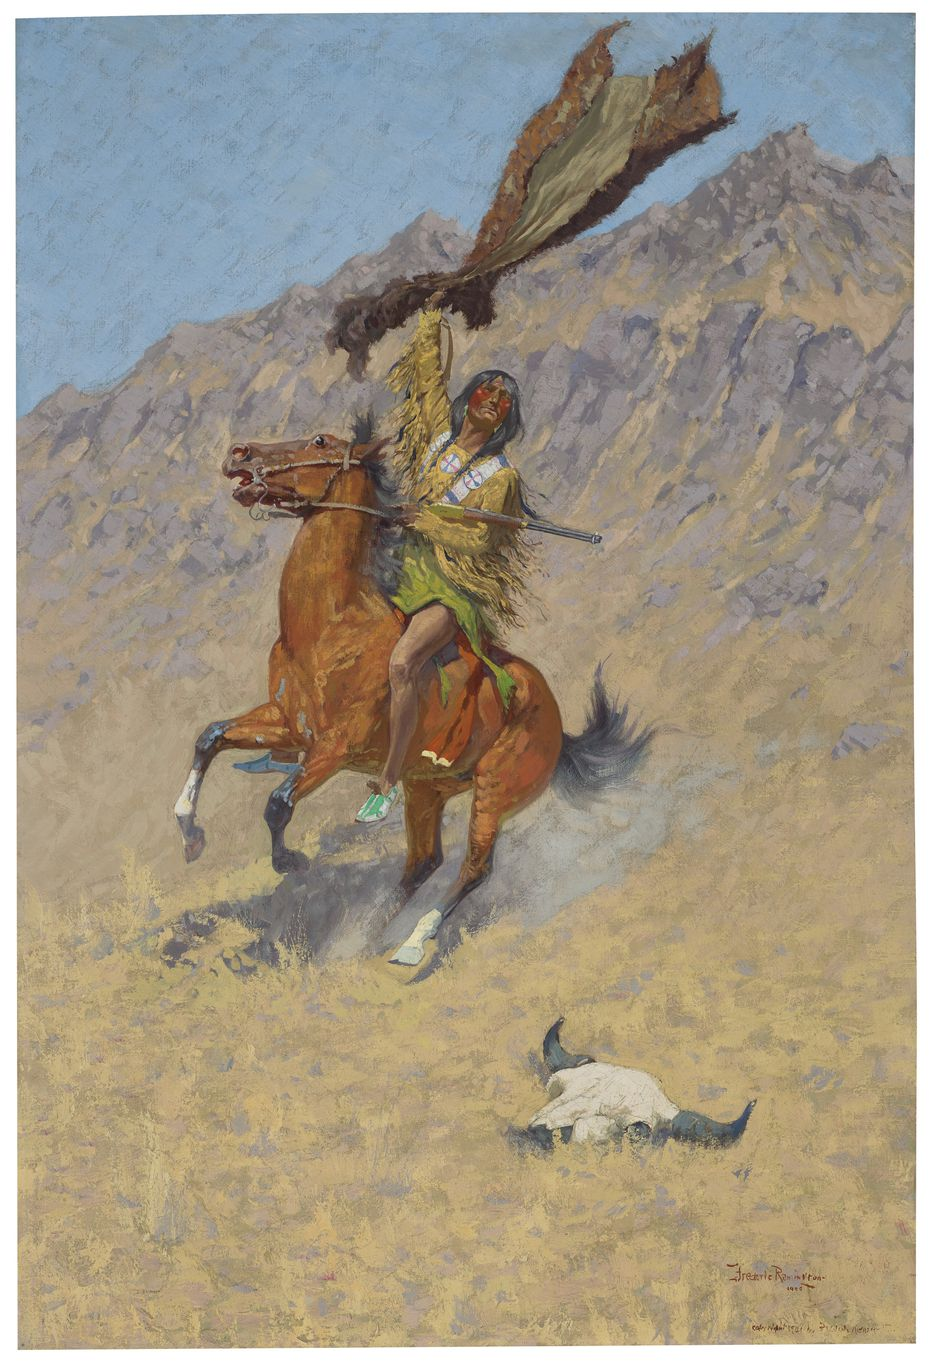 The Signal (If Skulls Could Speak) painted in 1900 by Frederic Remington is the centerpiece of an upcoming auction of the T. Boone Pickens art collection by Christie's in New York. It has a presale estimate of $3 million to $5 million.